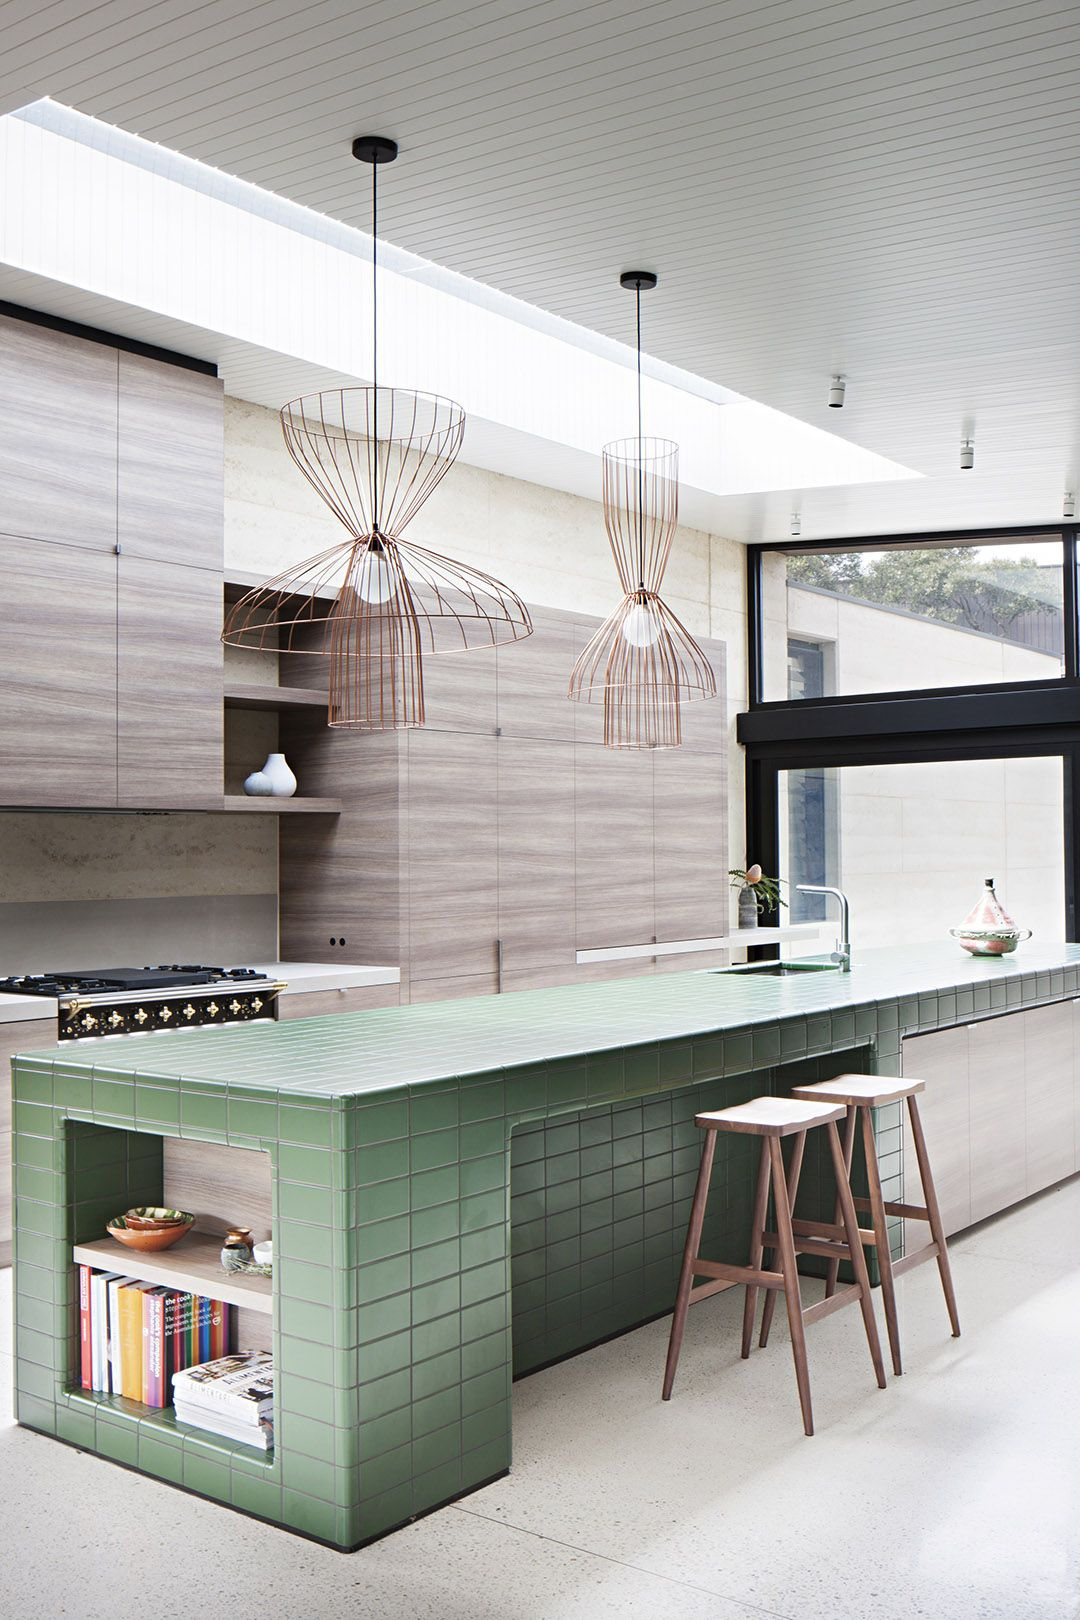 Inspiring Family Home With A Green Tiled Kitchen | Pinterest ...